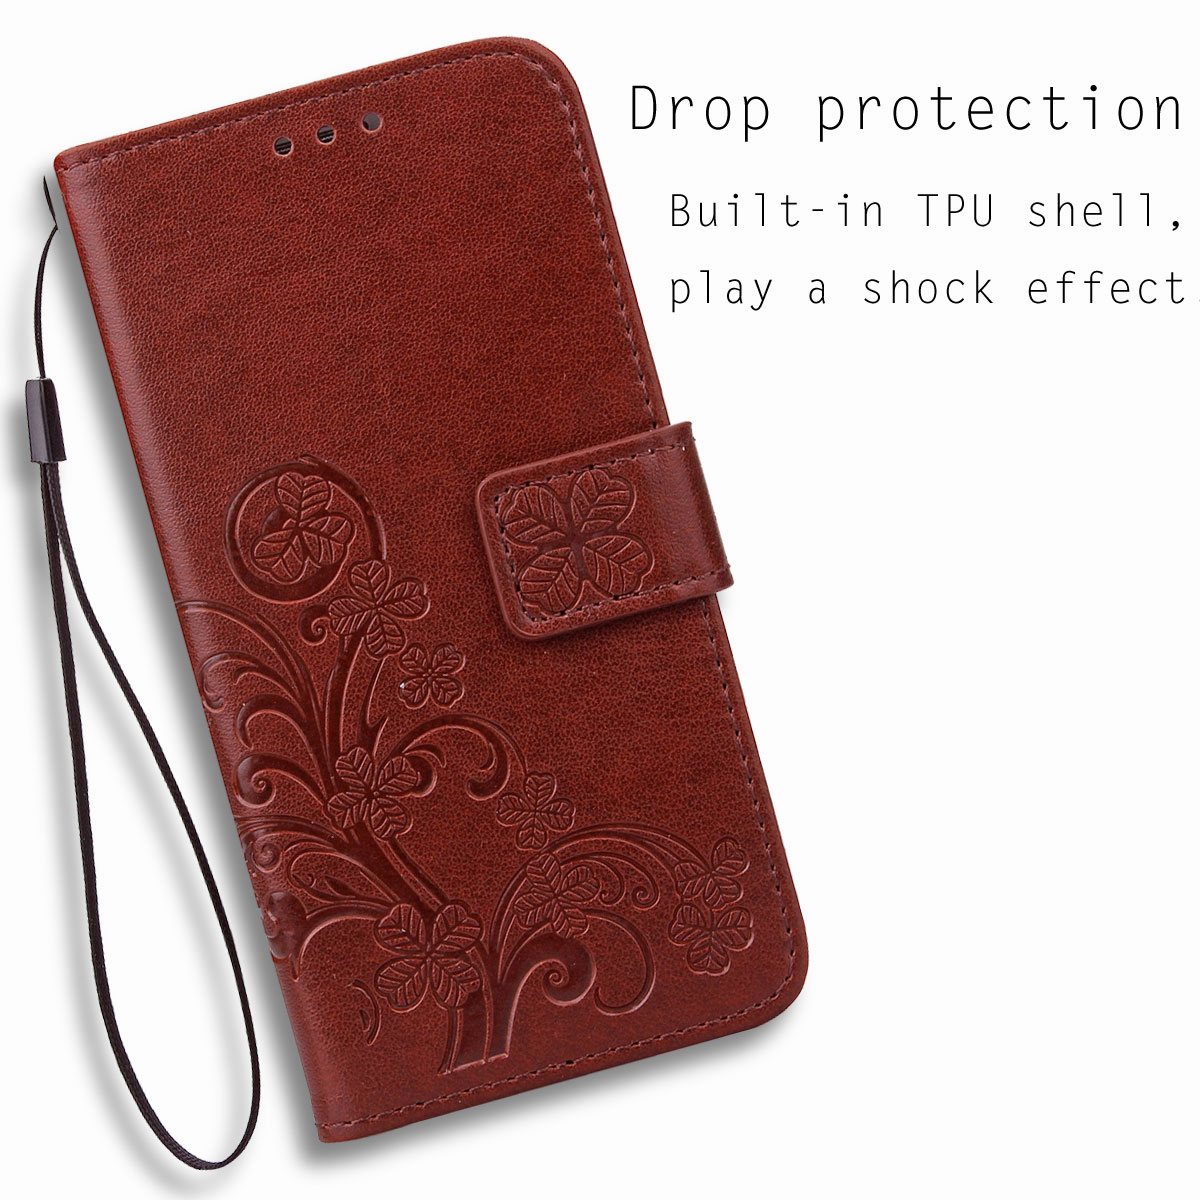 For-Apple-iPhone-Phones-Soft-Leather-Magnetic-Wallet-Card-Holder-Sim-Case-Cover thumbnail 15